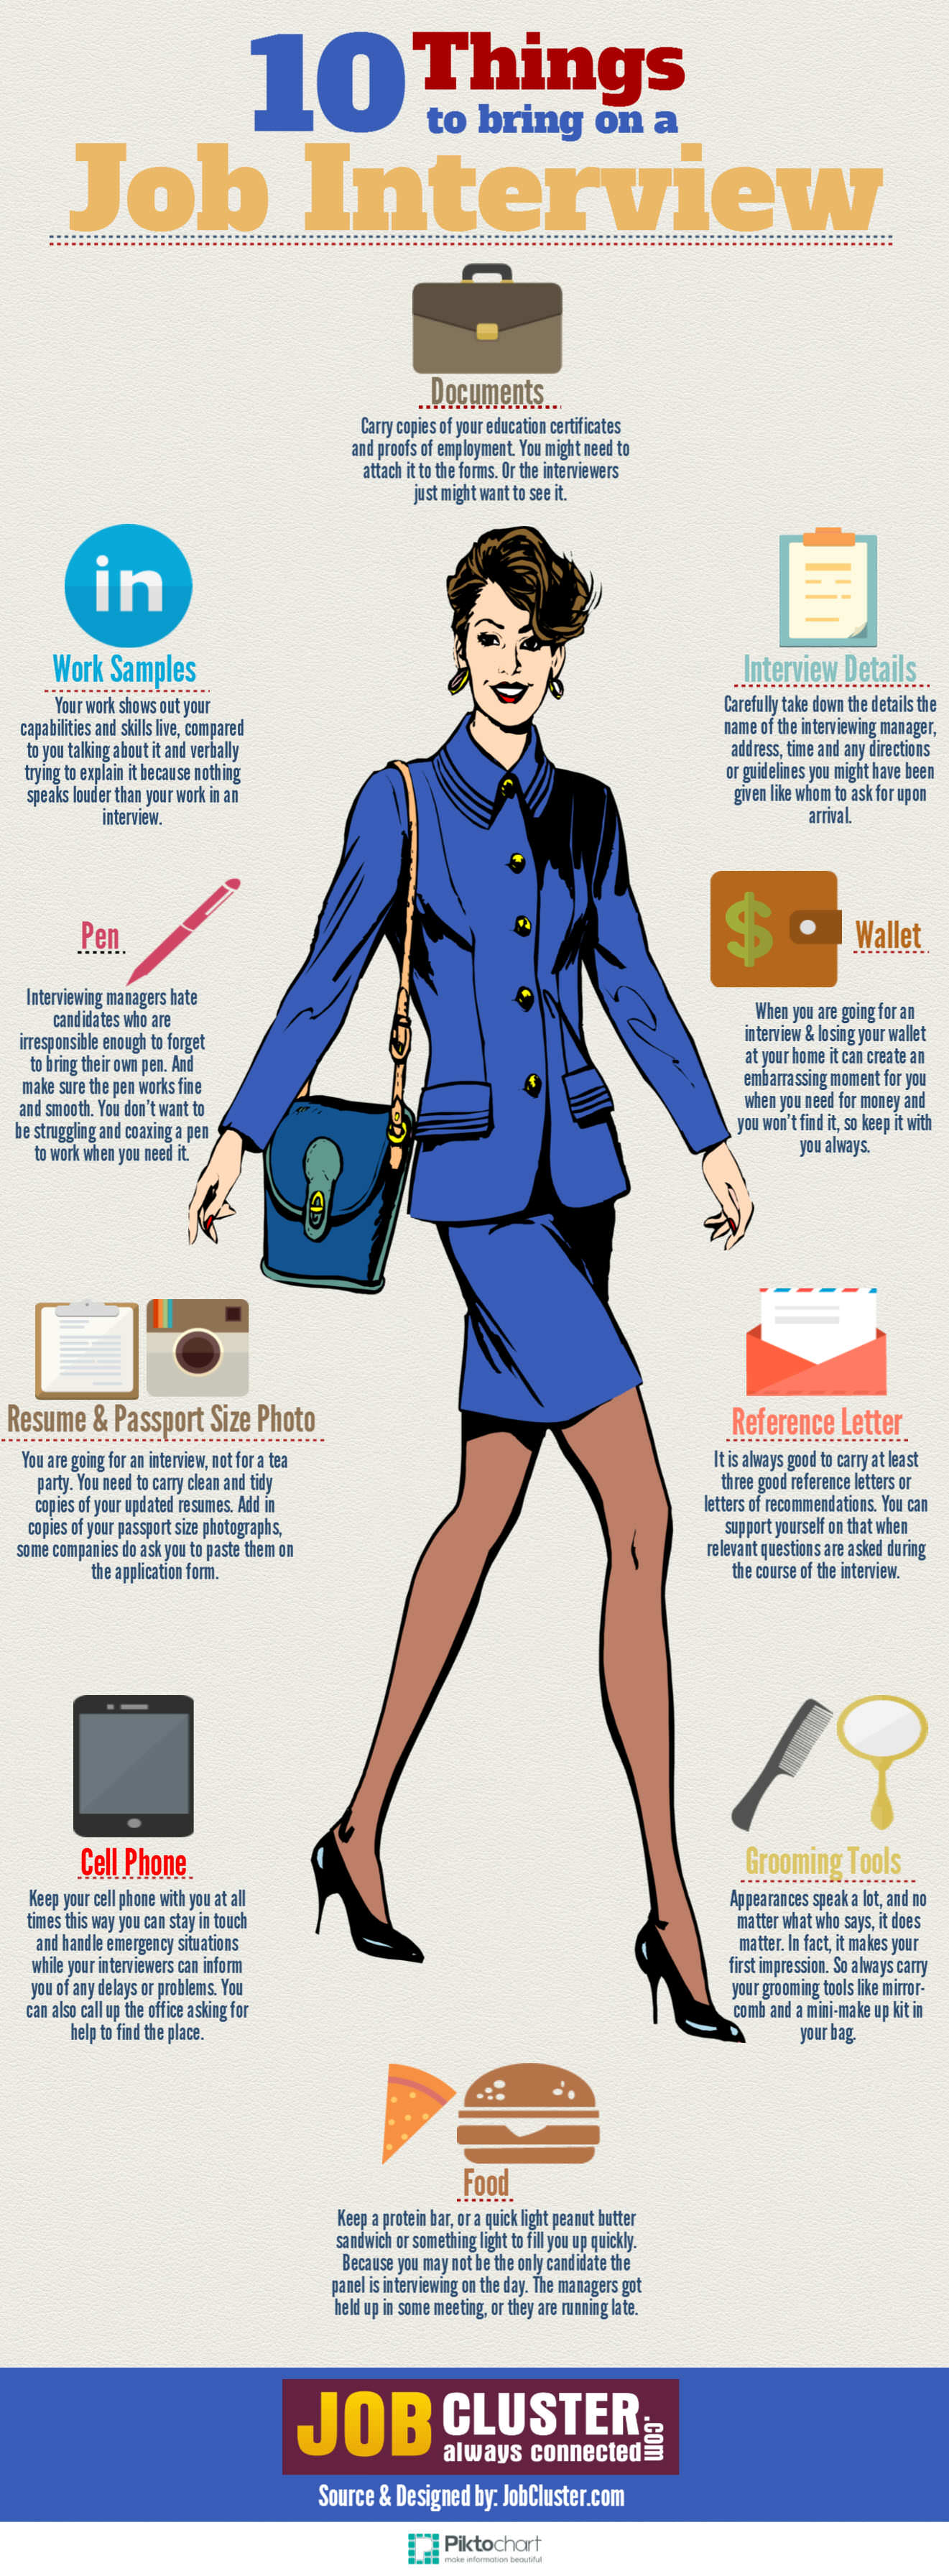 10 Things to Bring on Job Interview